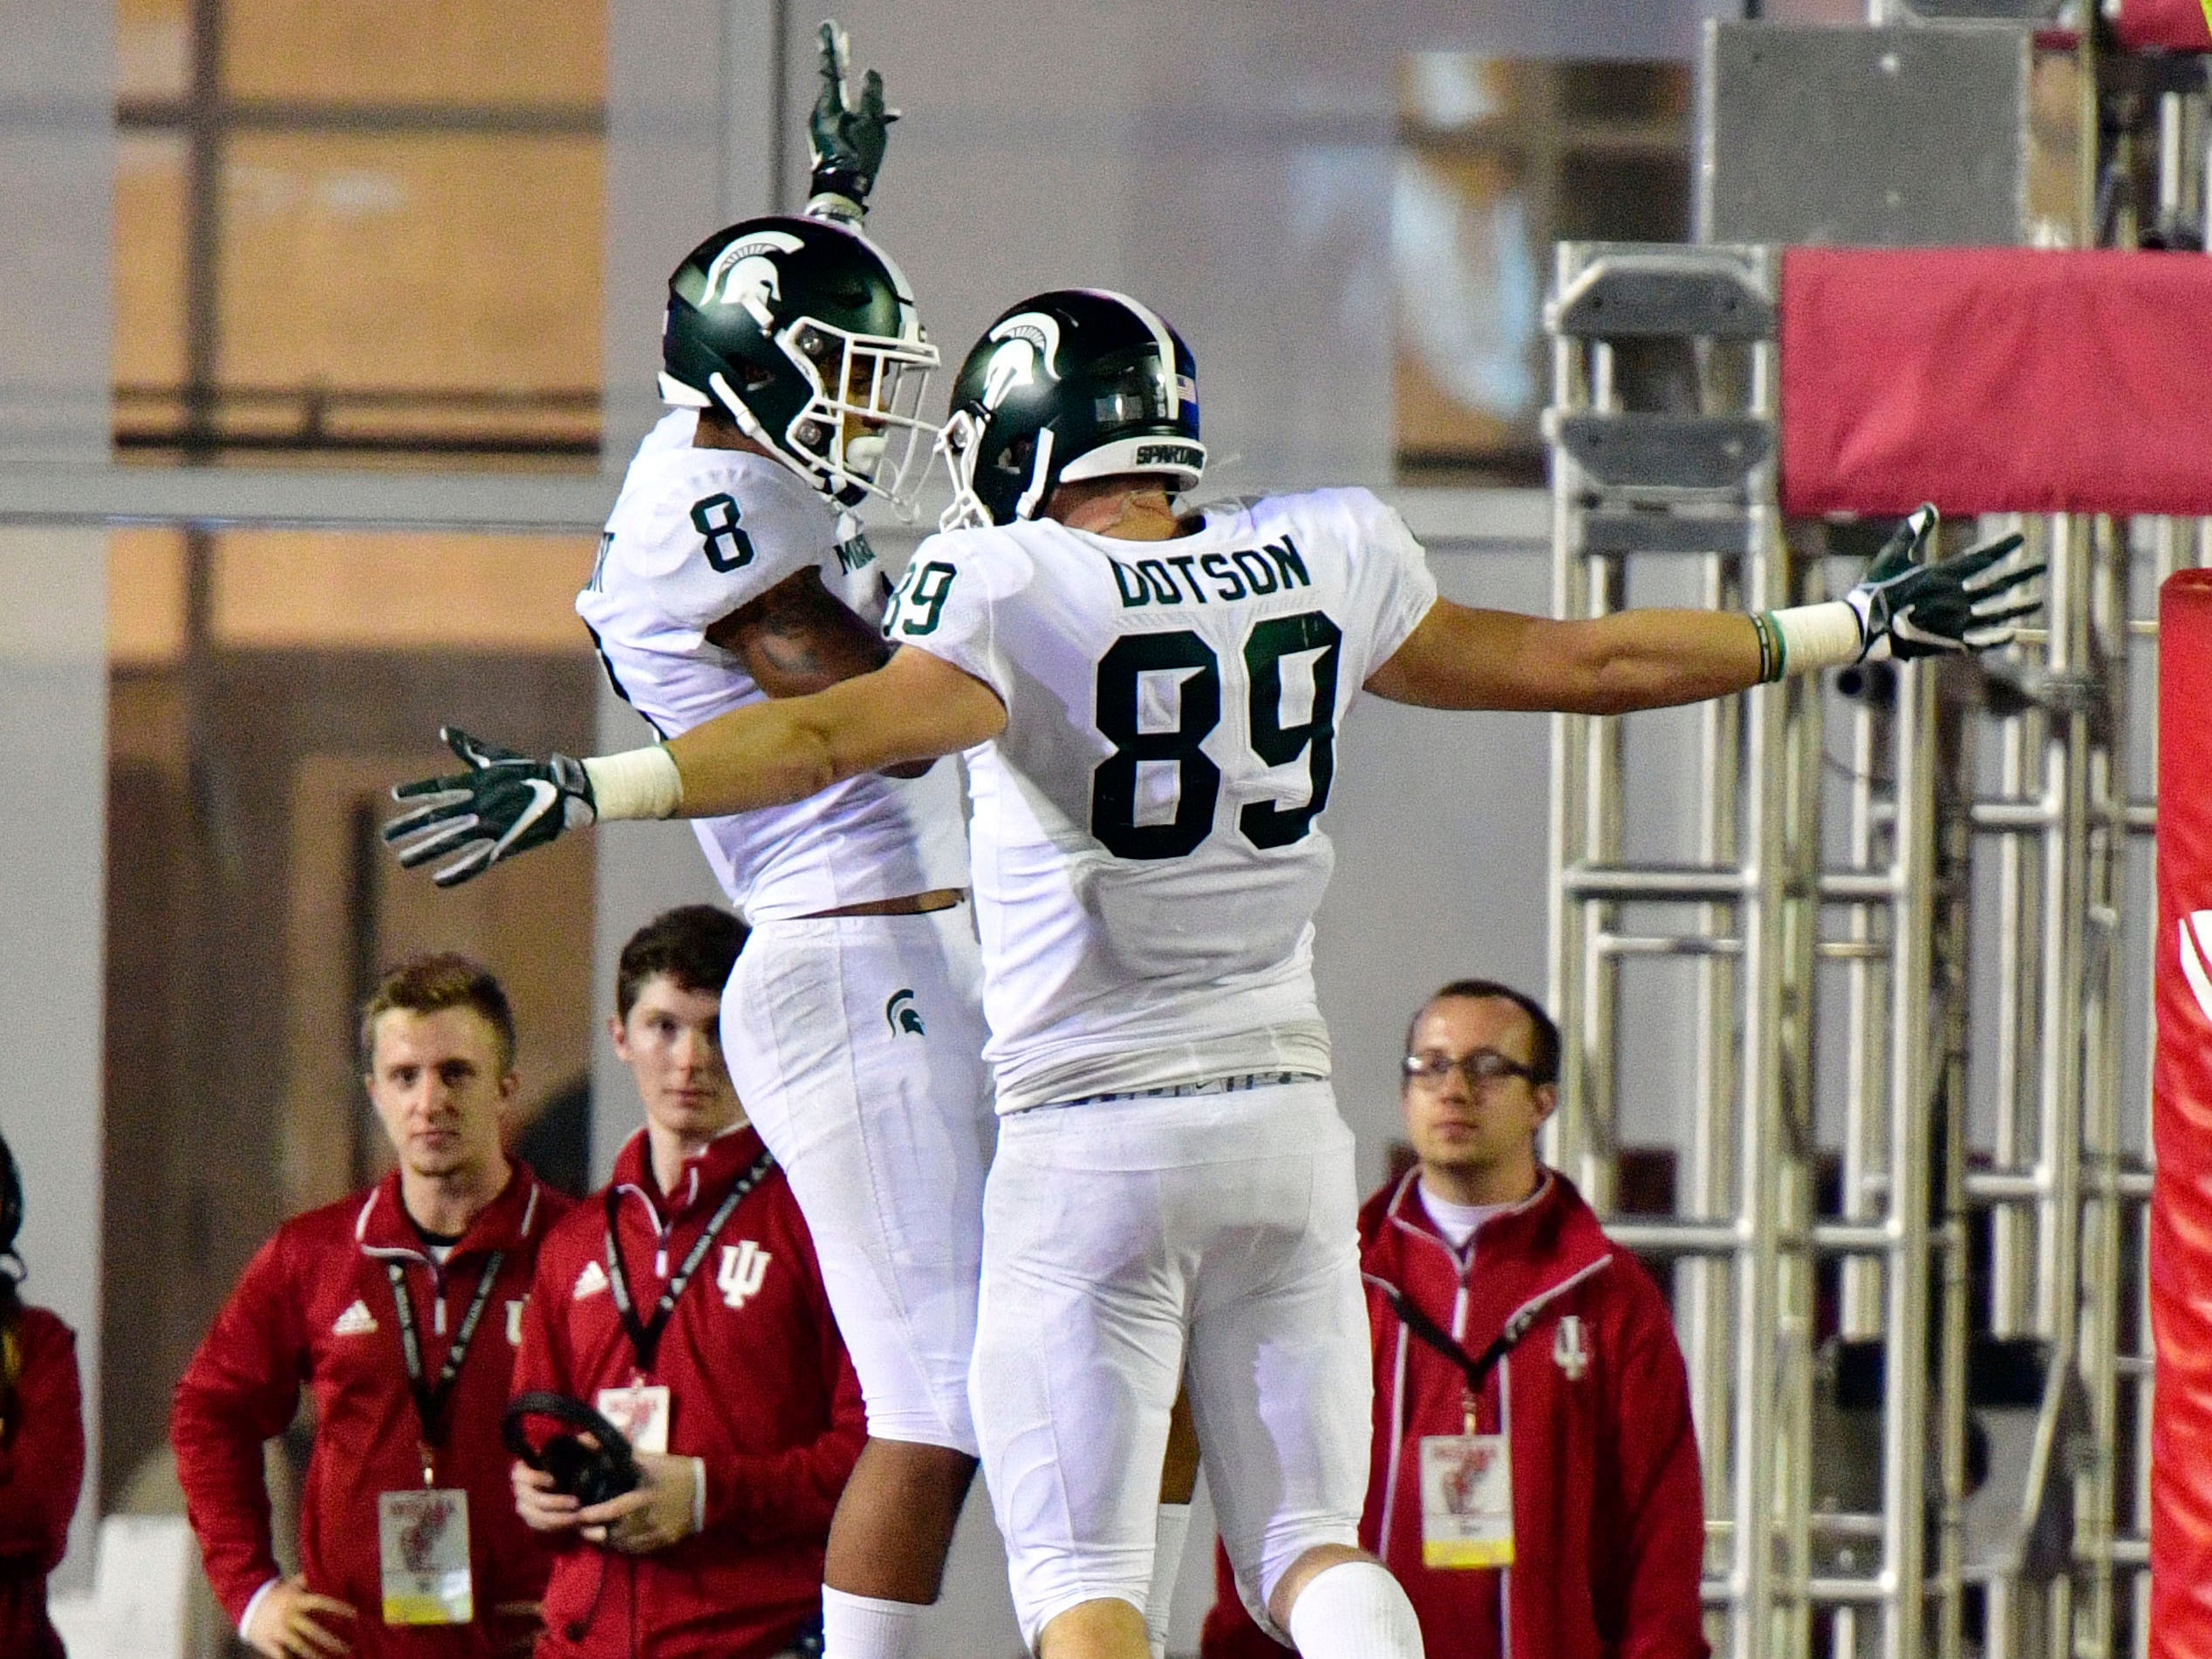 Michigan State Spartans wide receiver Jalen Nailor (8) celebrates running a ball the length of the field for a touchdown with tight end Matt Dotson (89) during the second half at Memorial Stadium. The Michigan State Spartans defeated the Indiana Hoosiers 35 to 21.